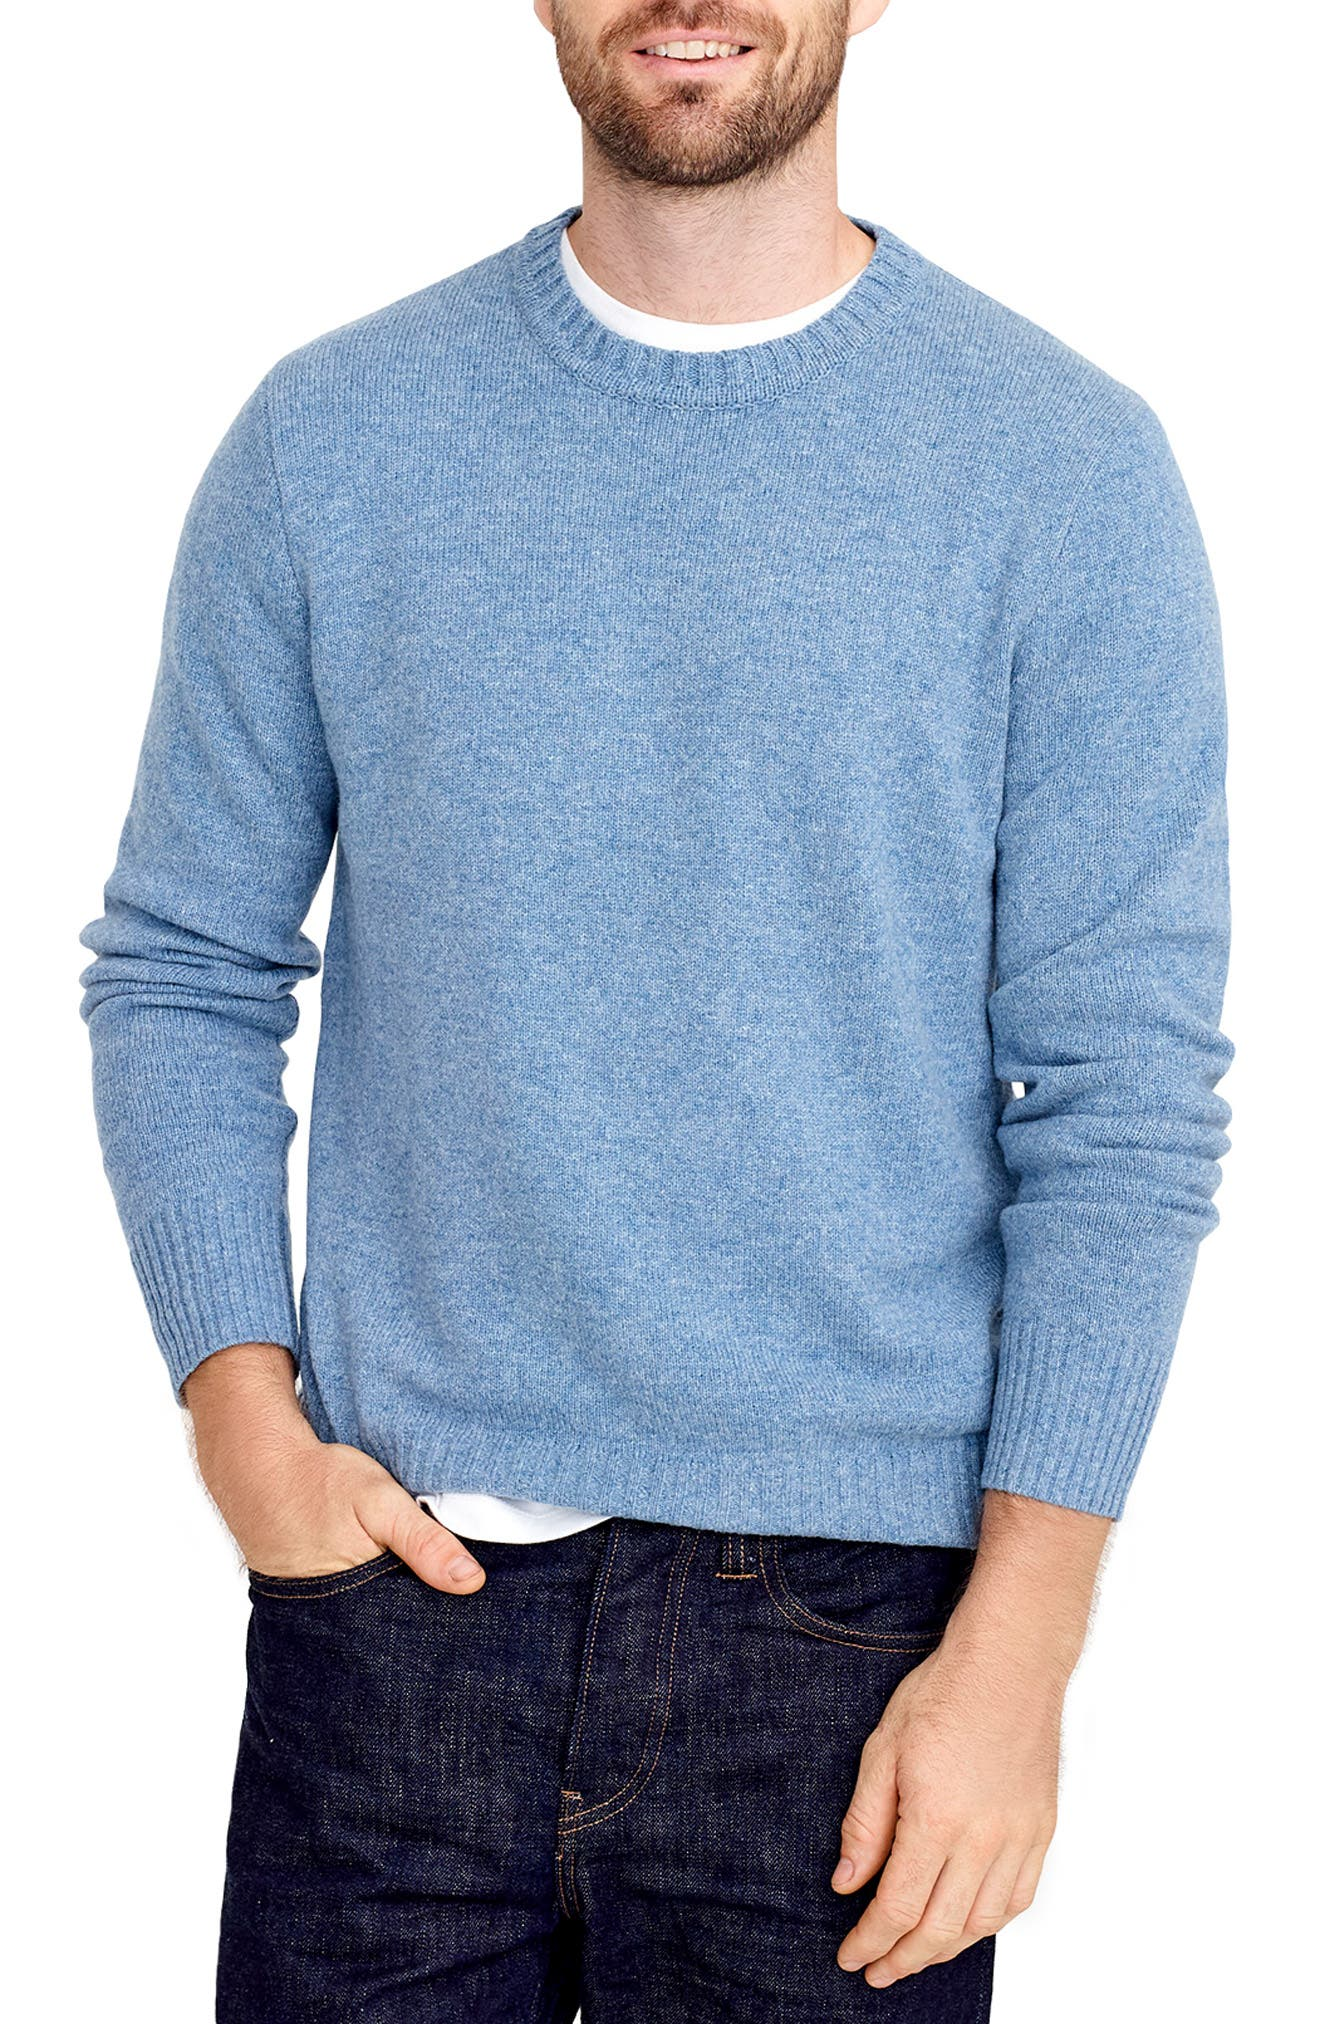 J.crew Rugged Merino Wool Blend Sweater